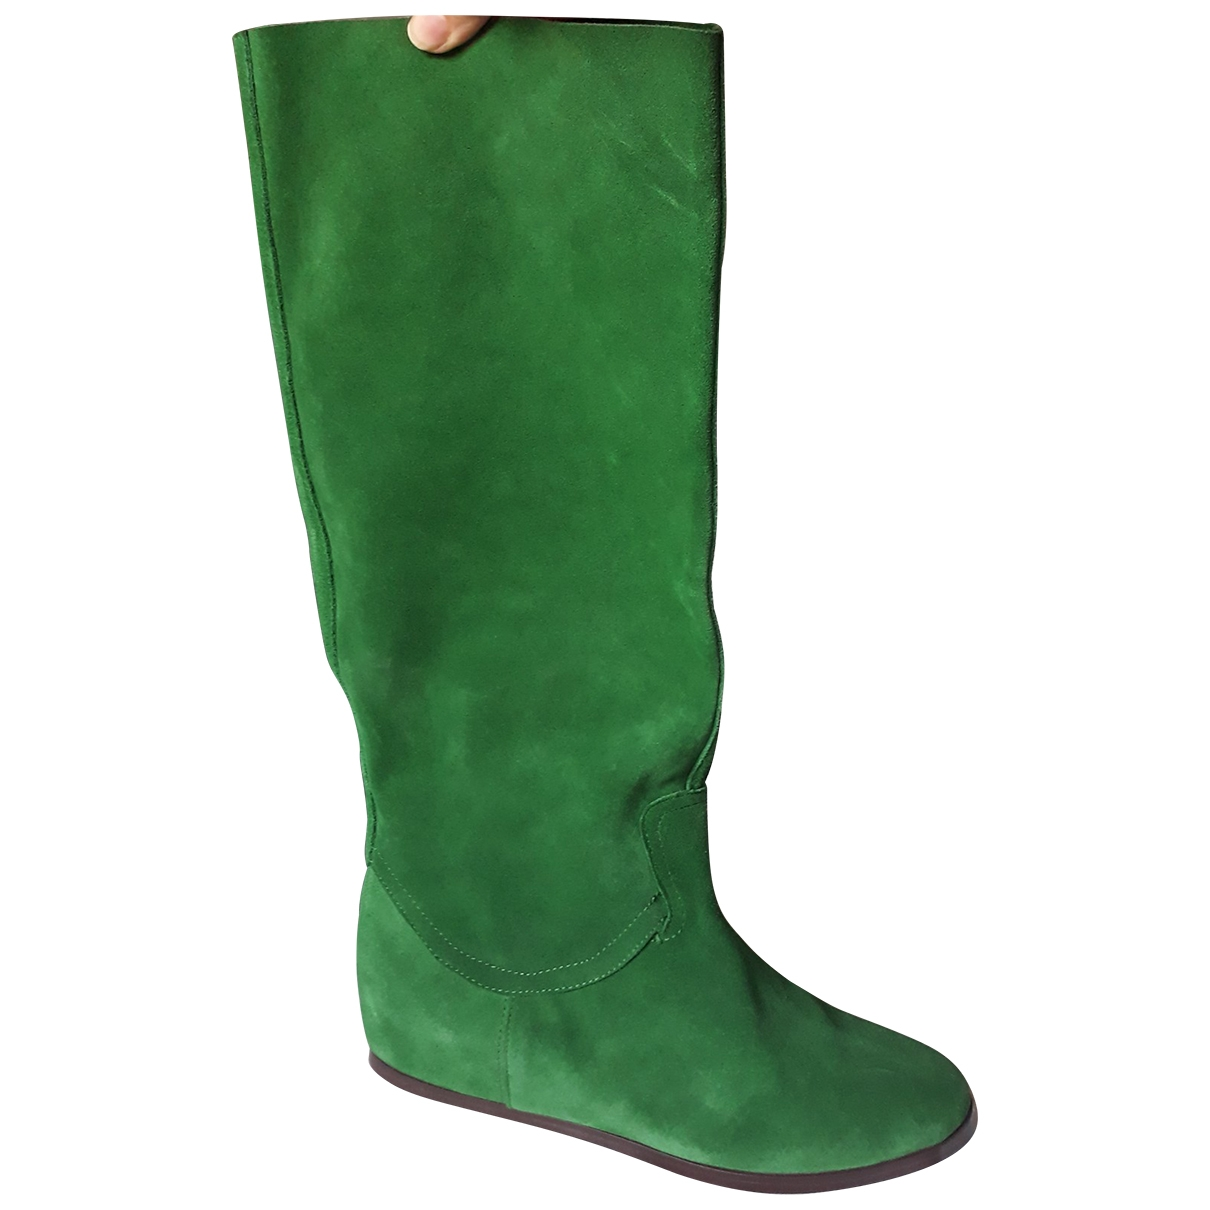 Casadei \N Green Leather Boots for Women 37 EU